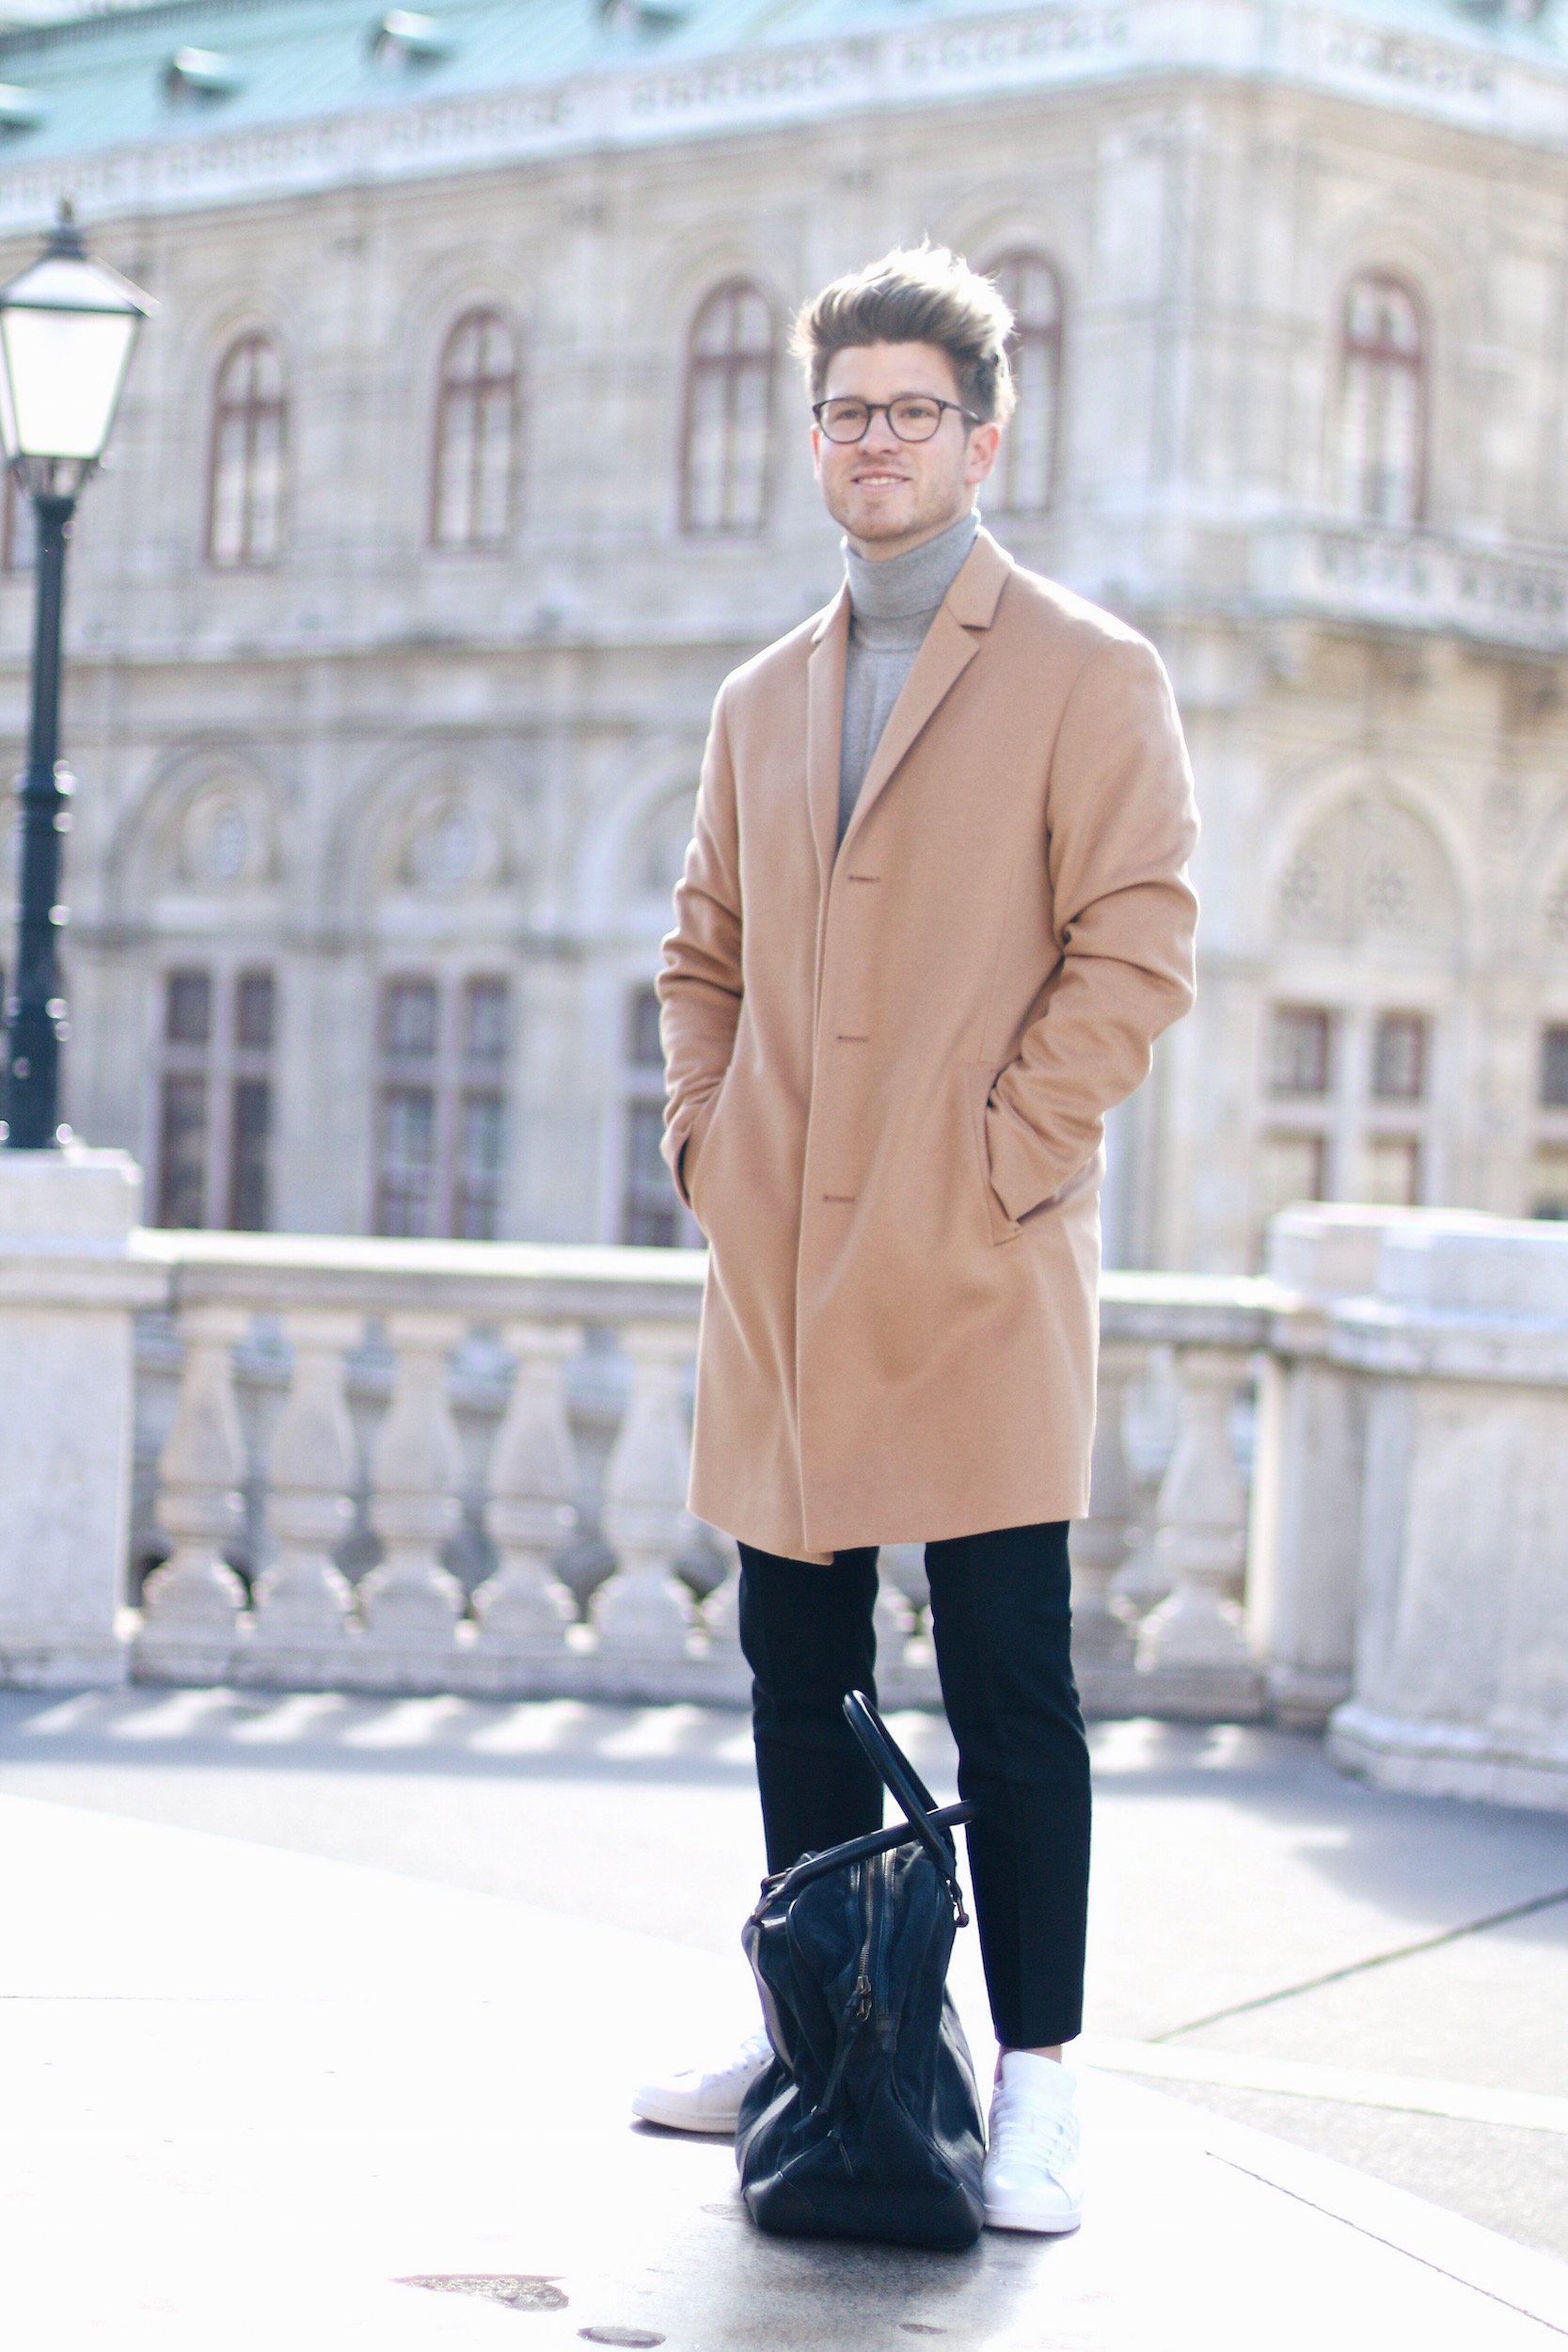 Peek & Cloppenburg Online Shop Launch Austria_Outfit Calvin Klein Camel Coat by Meanwhile in Awesometown_Austrian Mens Fashion and Lifestyle Blog 12